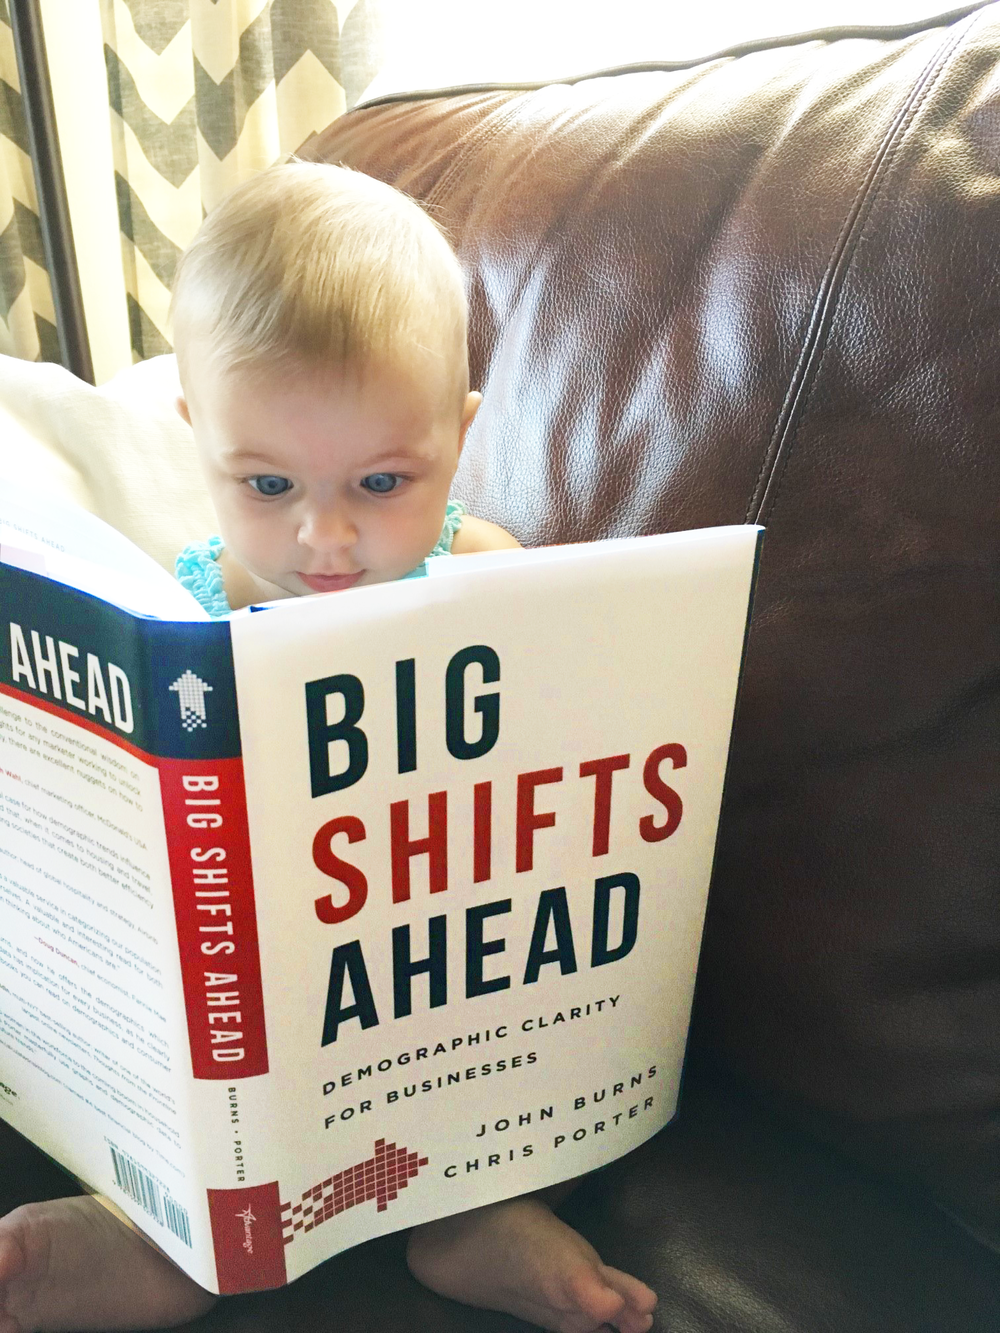 Our youngest reader, Finley Porter, supporting her dad (co-author Chris Porter), on launch day.